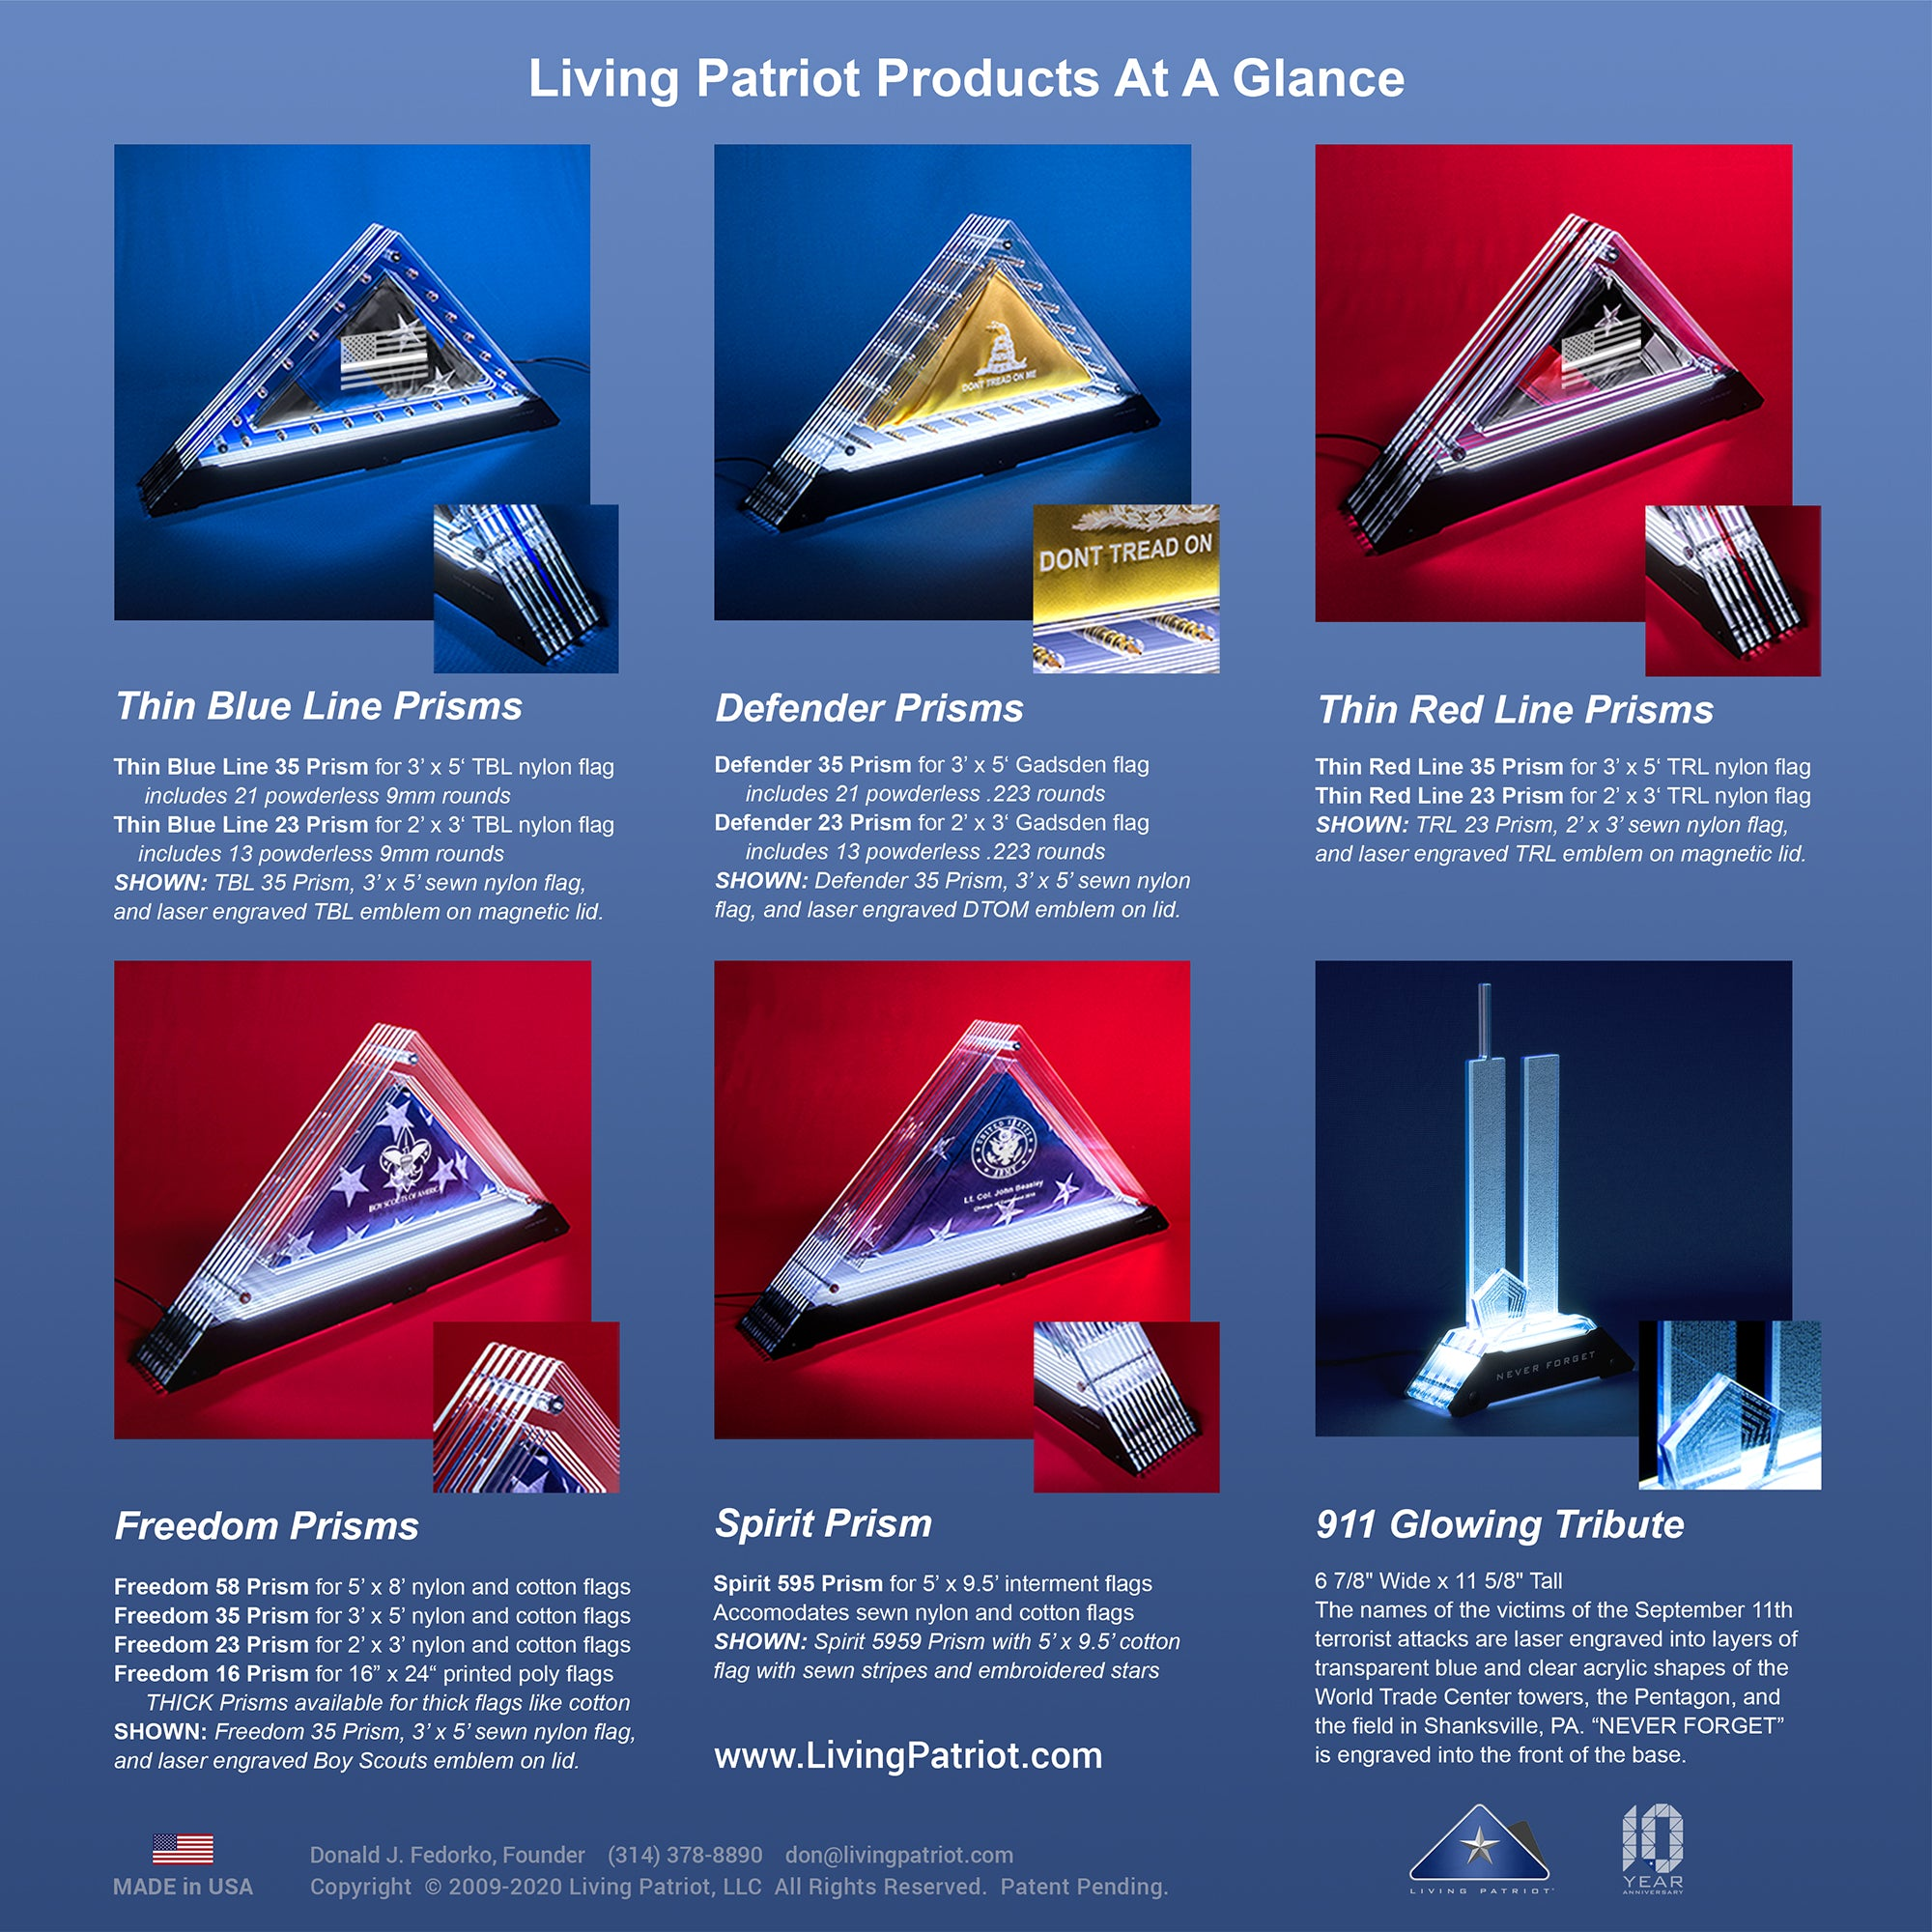 Products At A Glance | Living Patriot